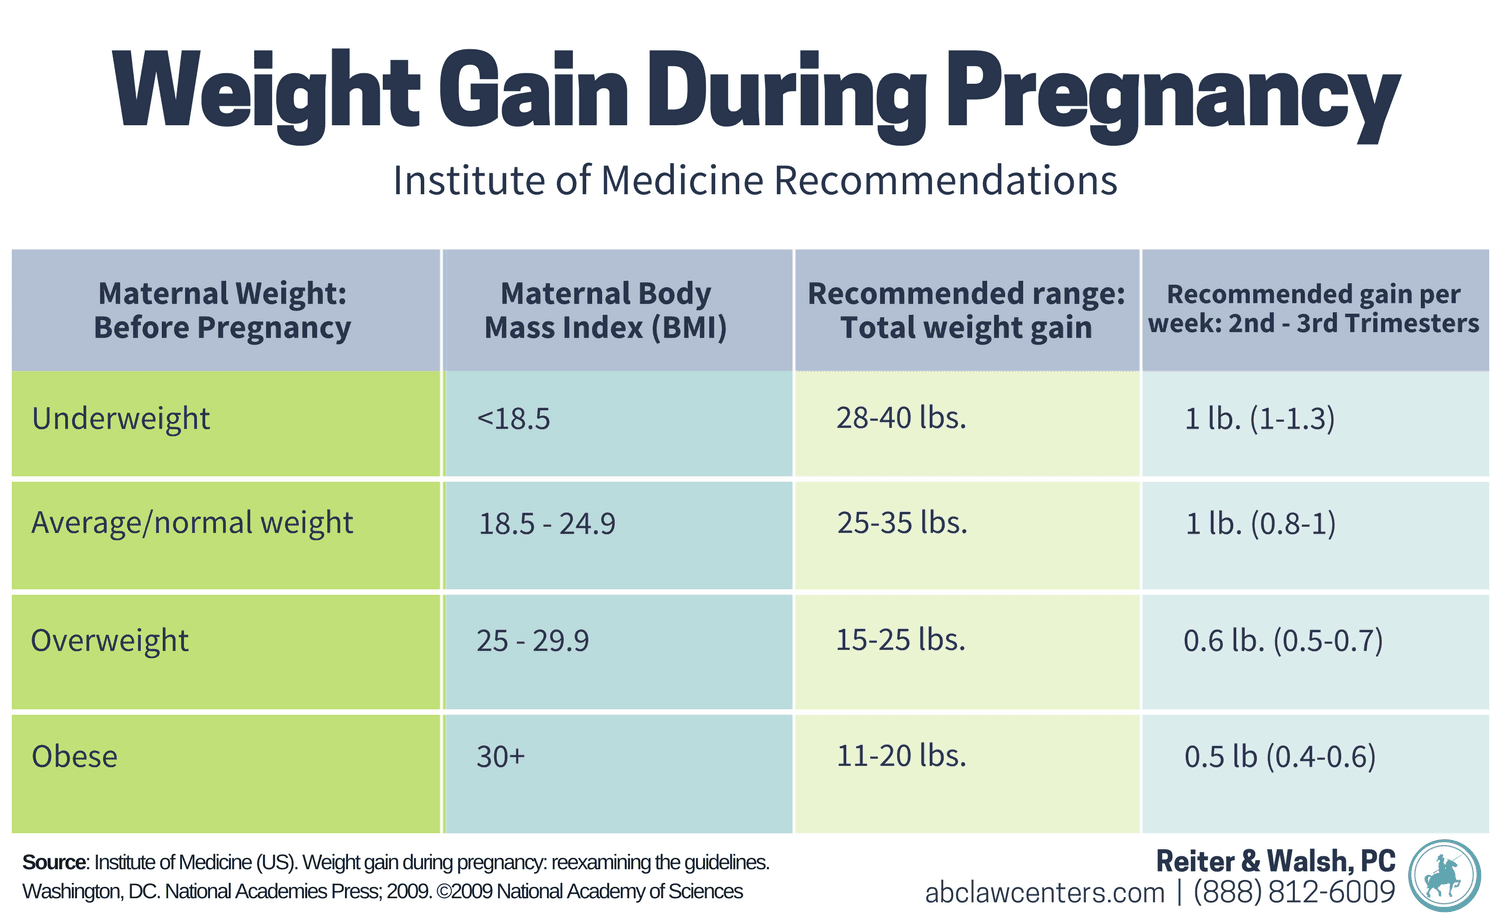 Pregnancy Weight Gain and BMI Chart- Maternal Obesity and Birth Injury